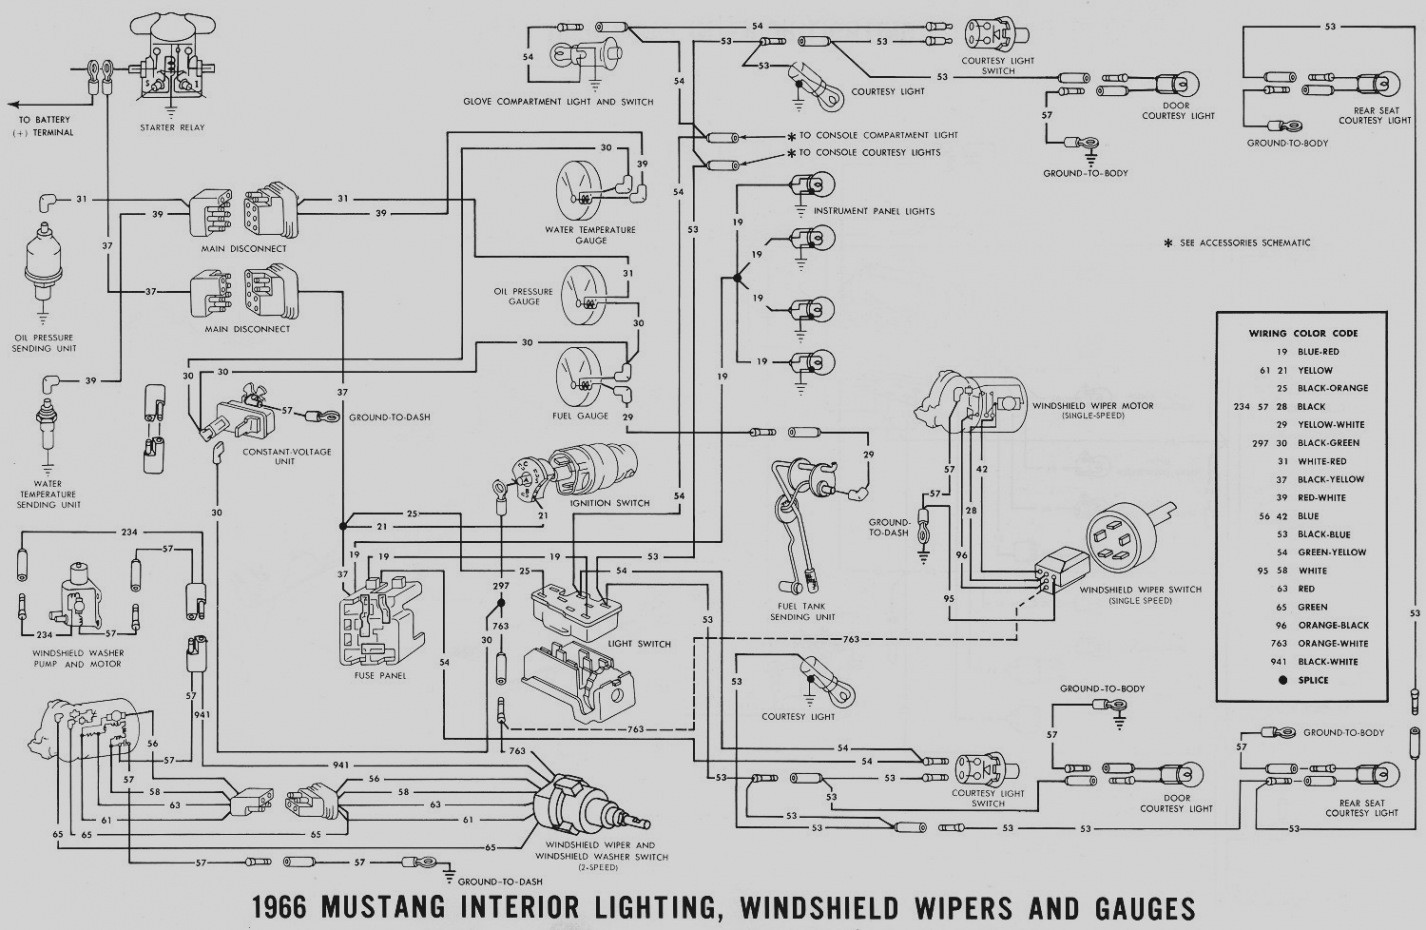 1996 Jeep Grand Cherokee Factory Amp Wiring Diagram - Wiring Solutions